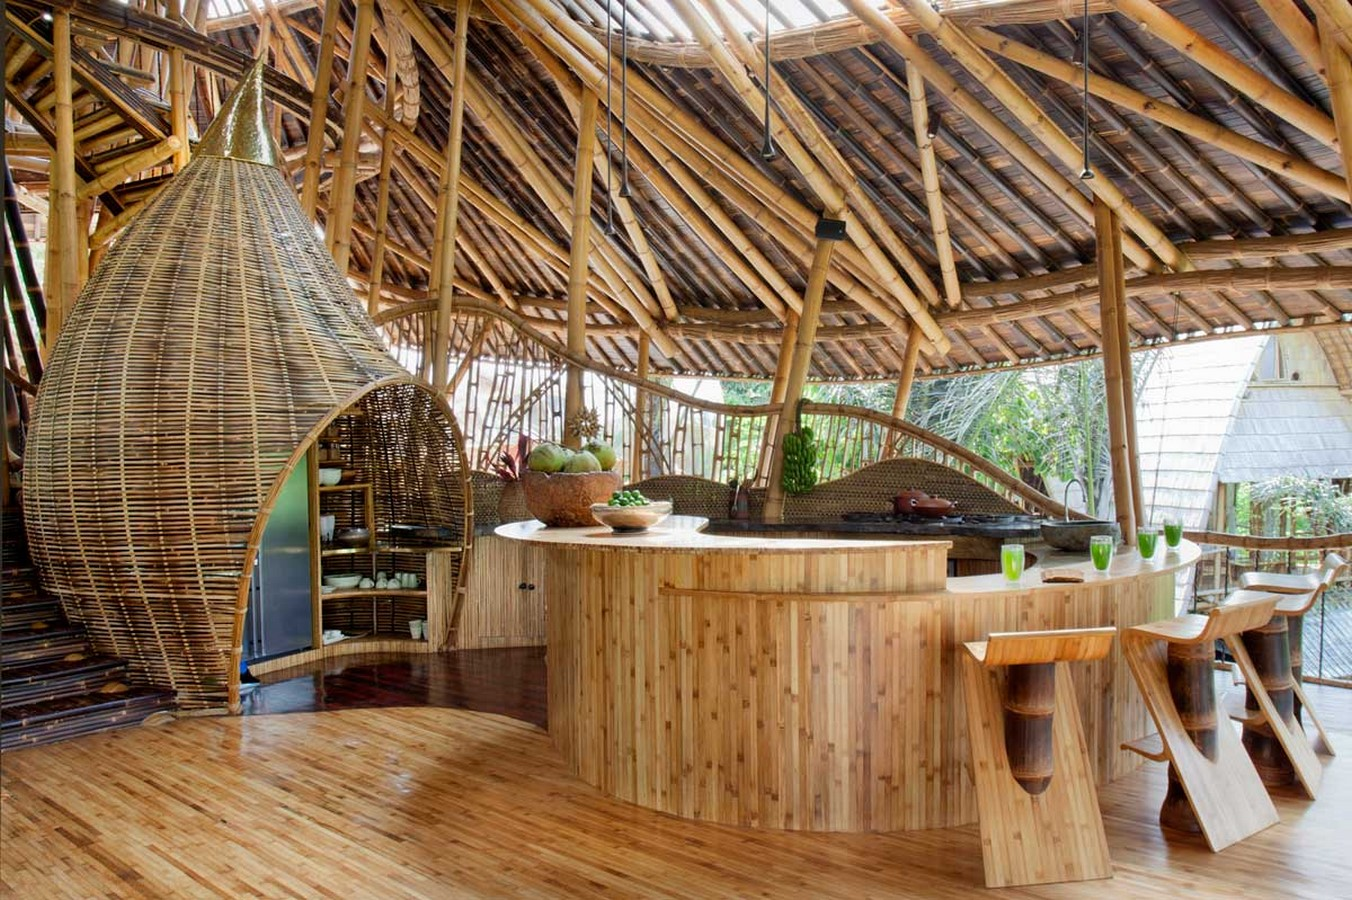 TEDTalks: for Architects: Magical houses, made of bamboo by Elora Hardy -Sheet5